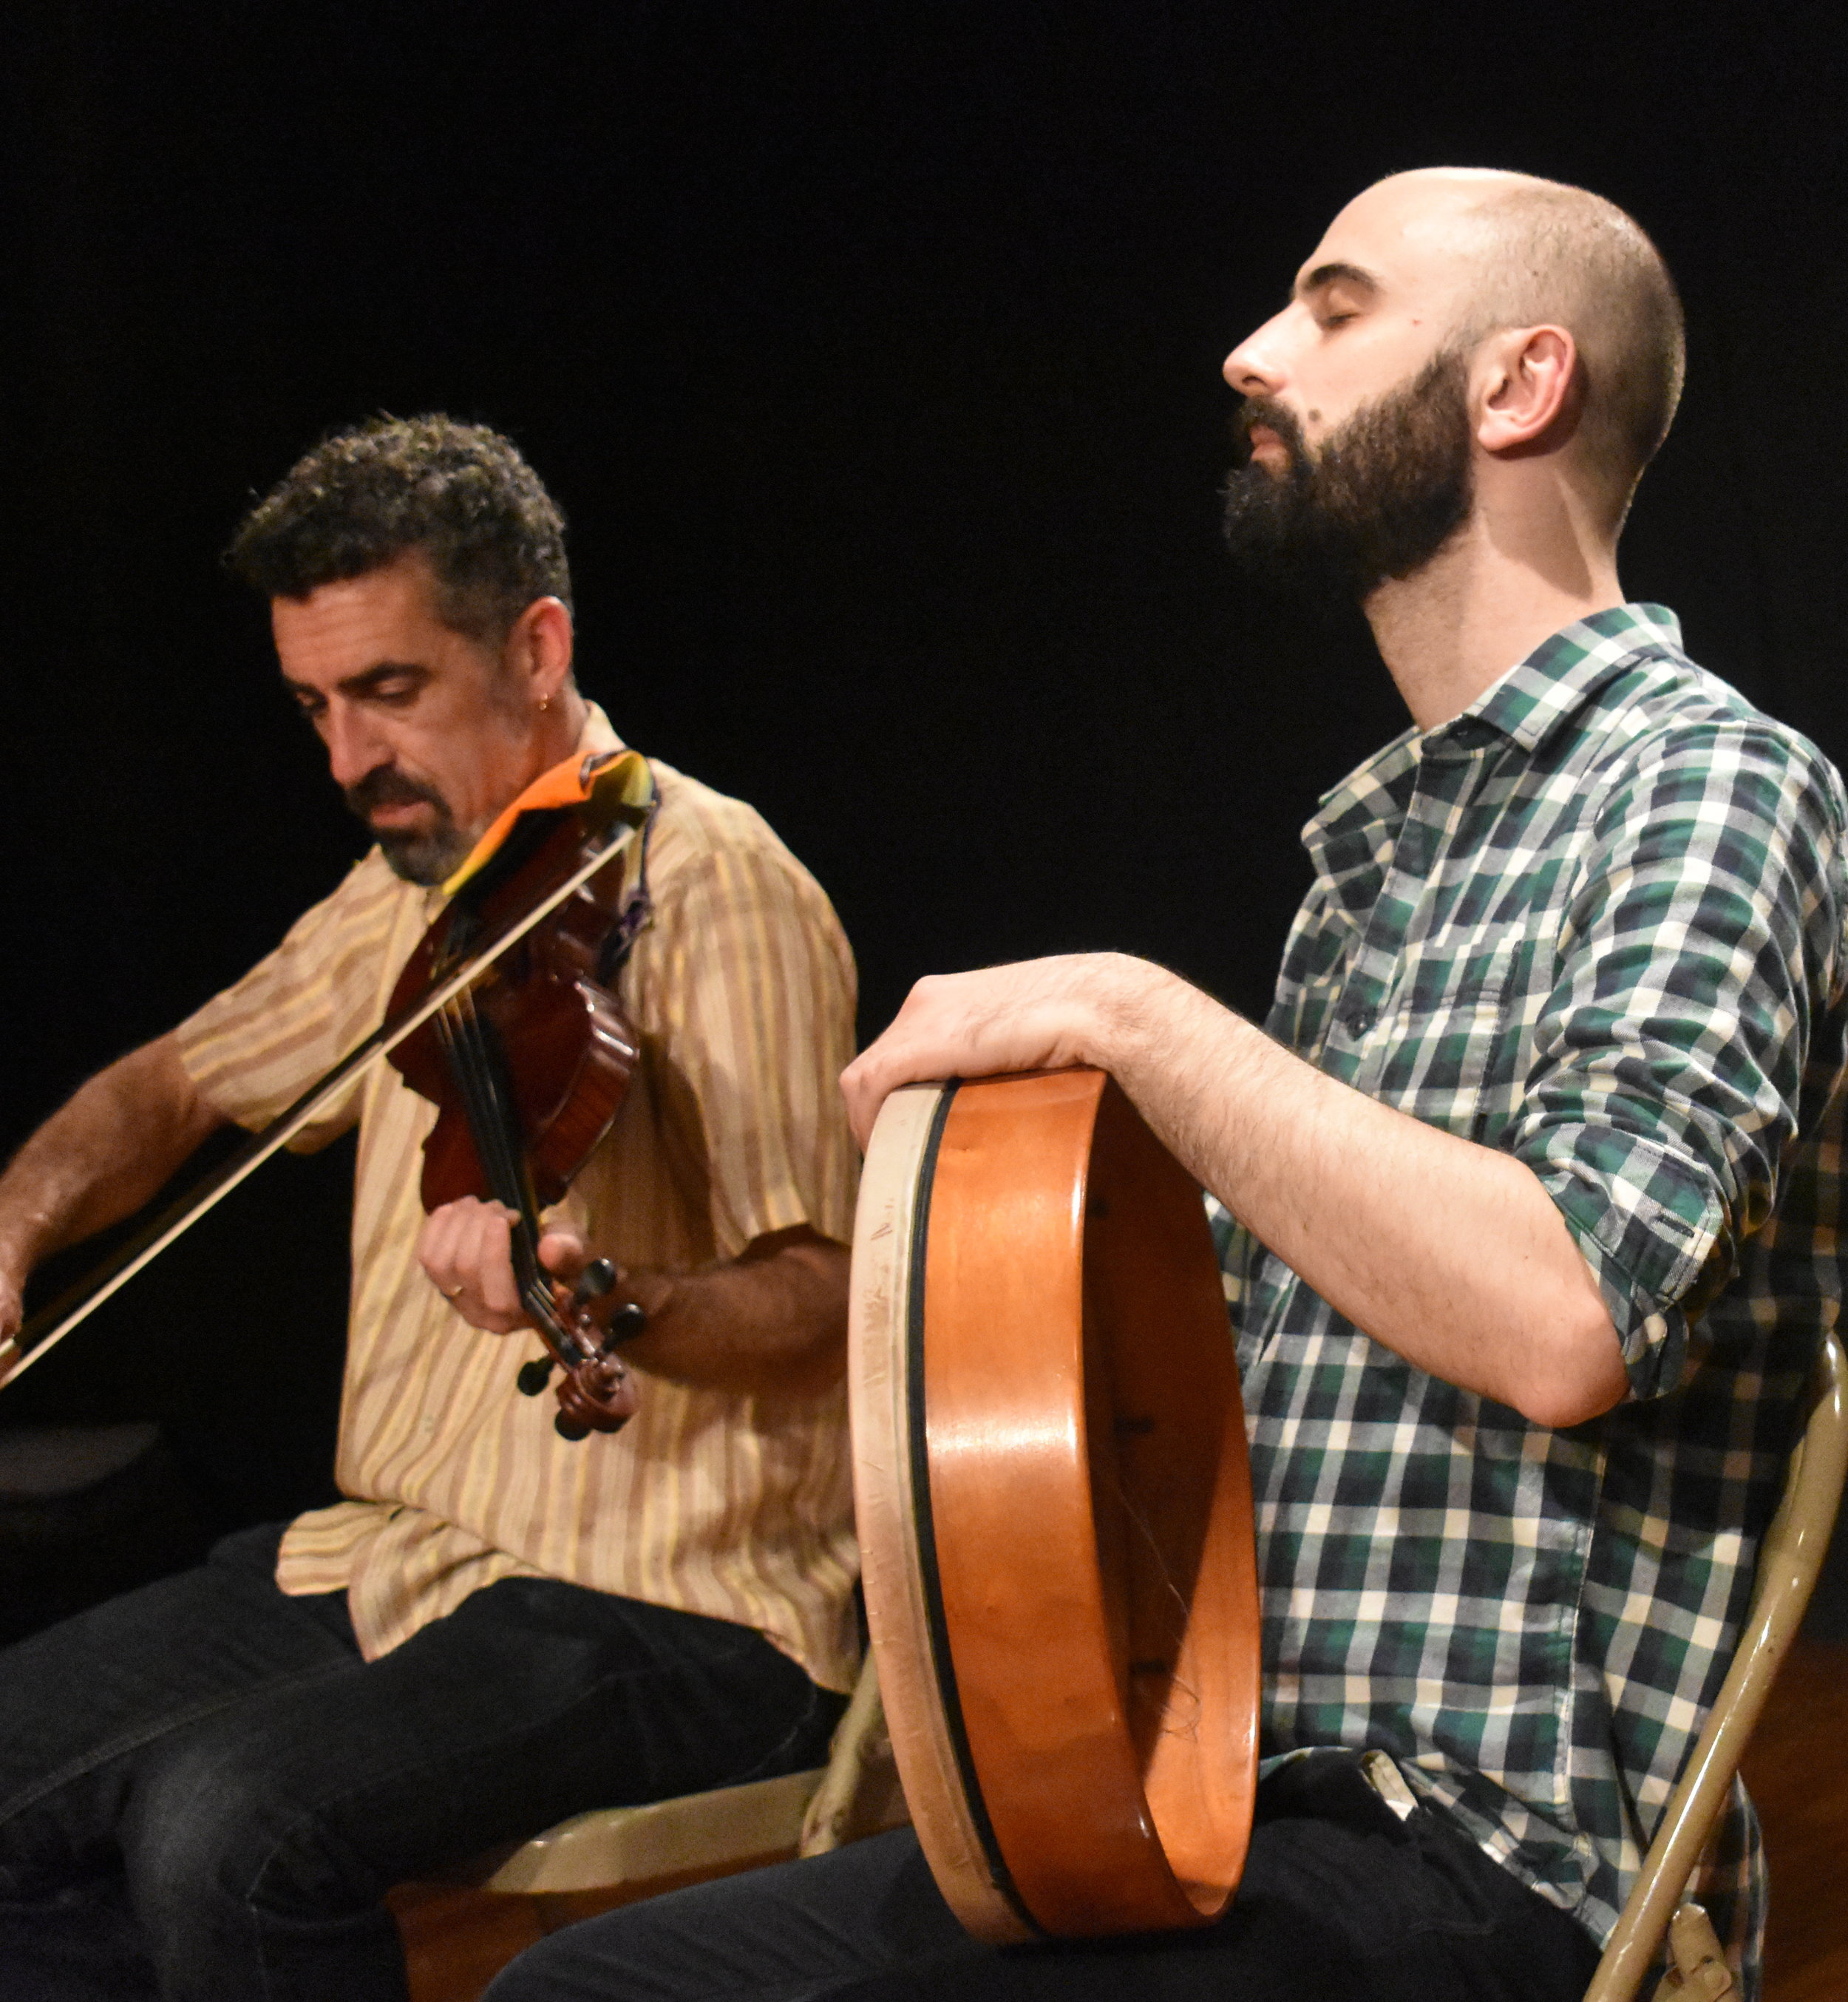 Members of the al-Andalus music group playing Arab-Jewish music. Photo by Mollie Block